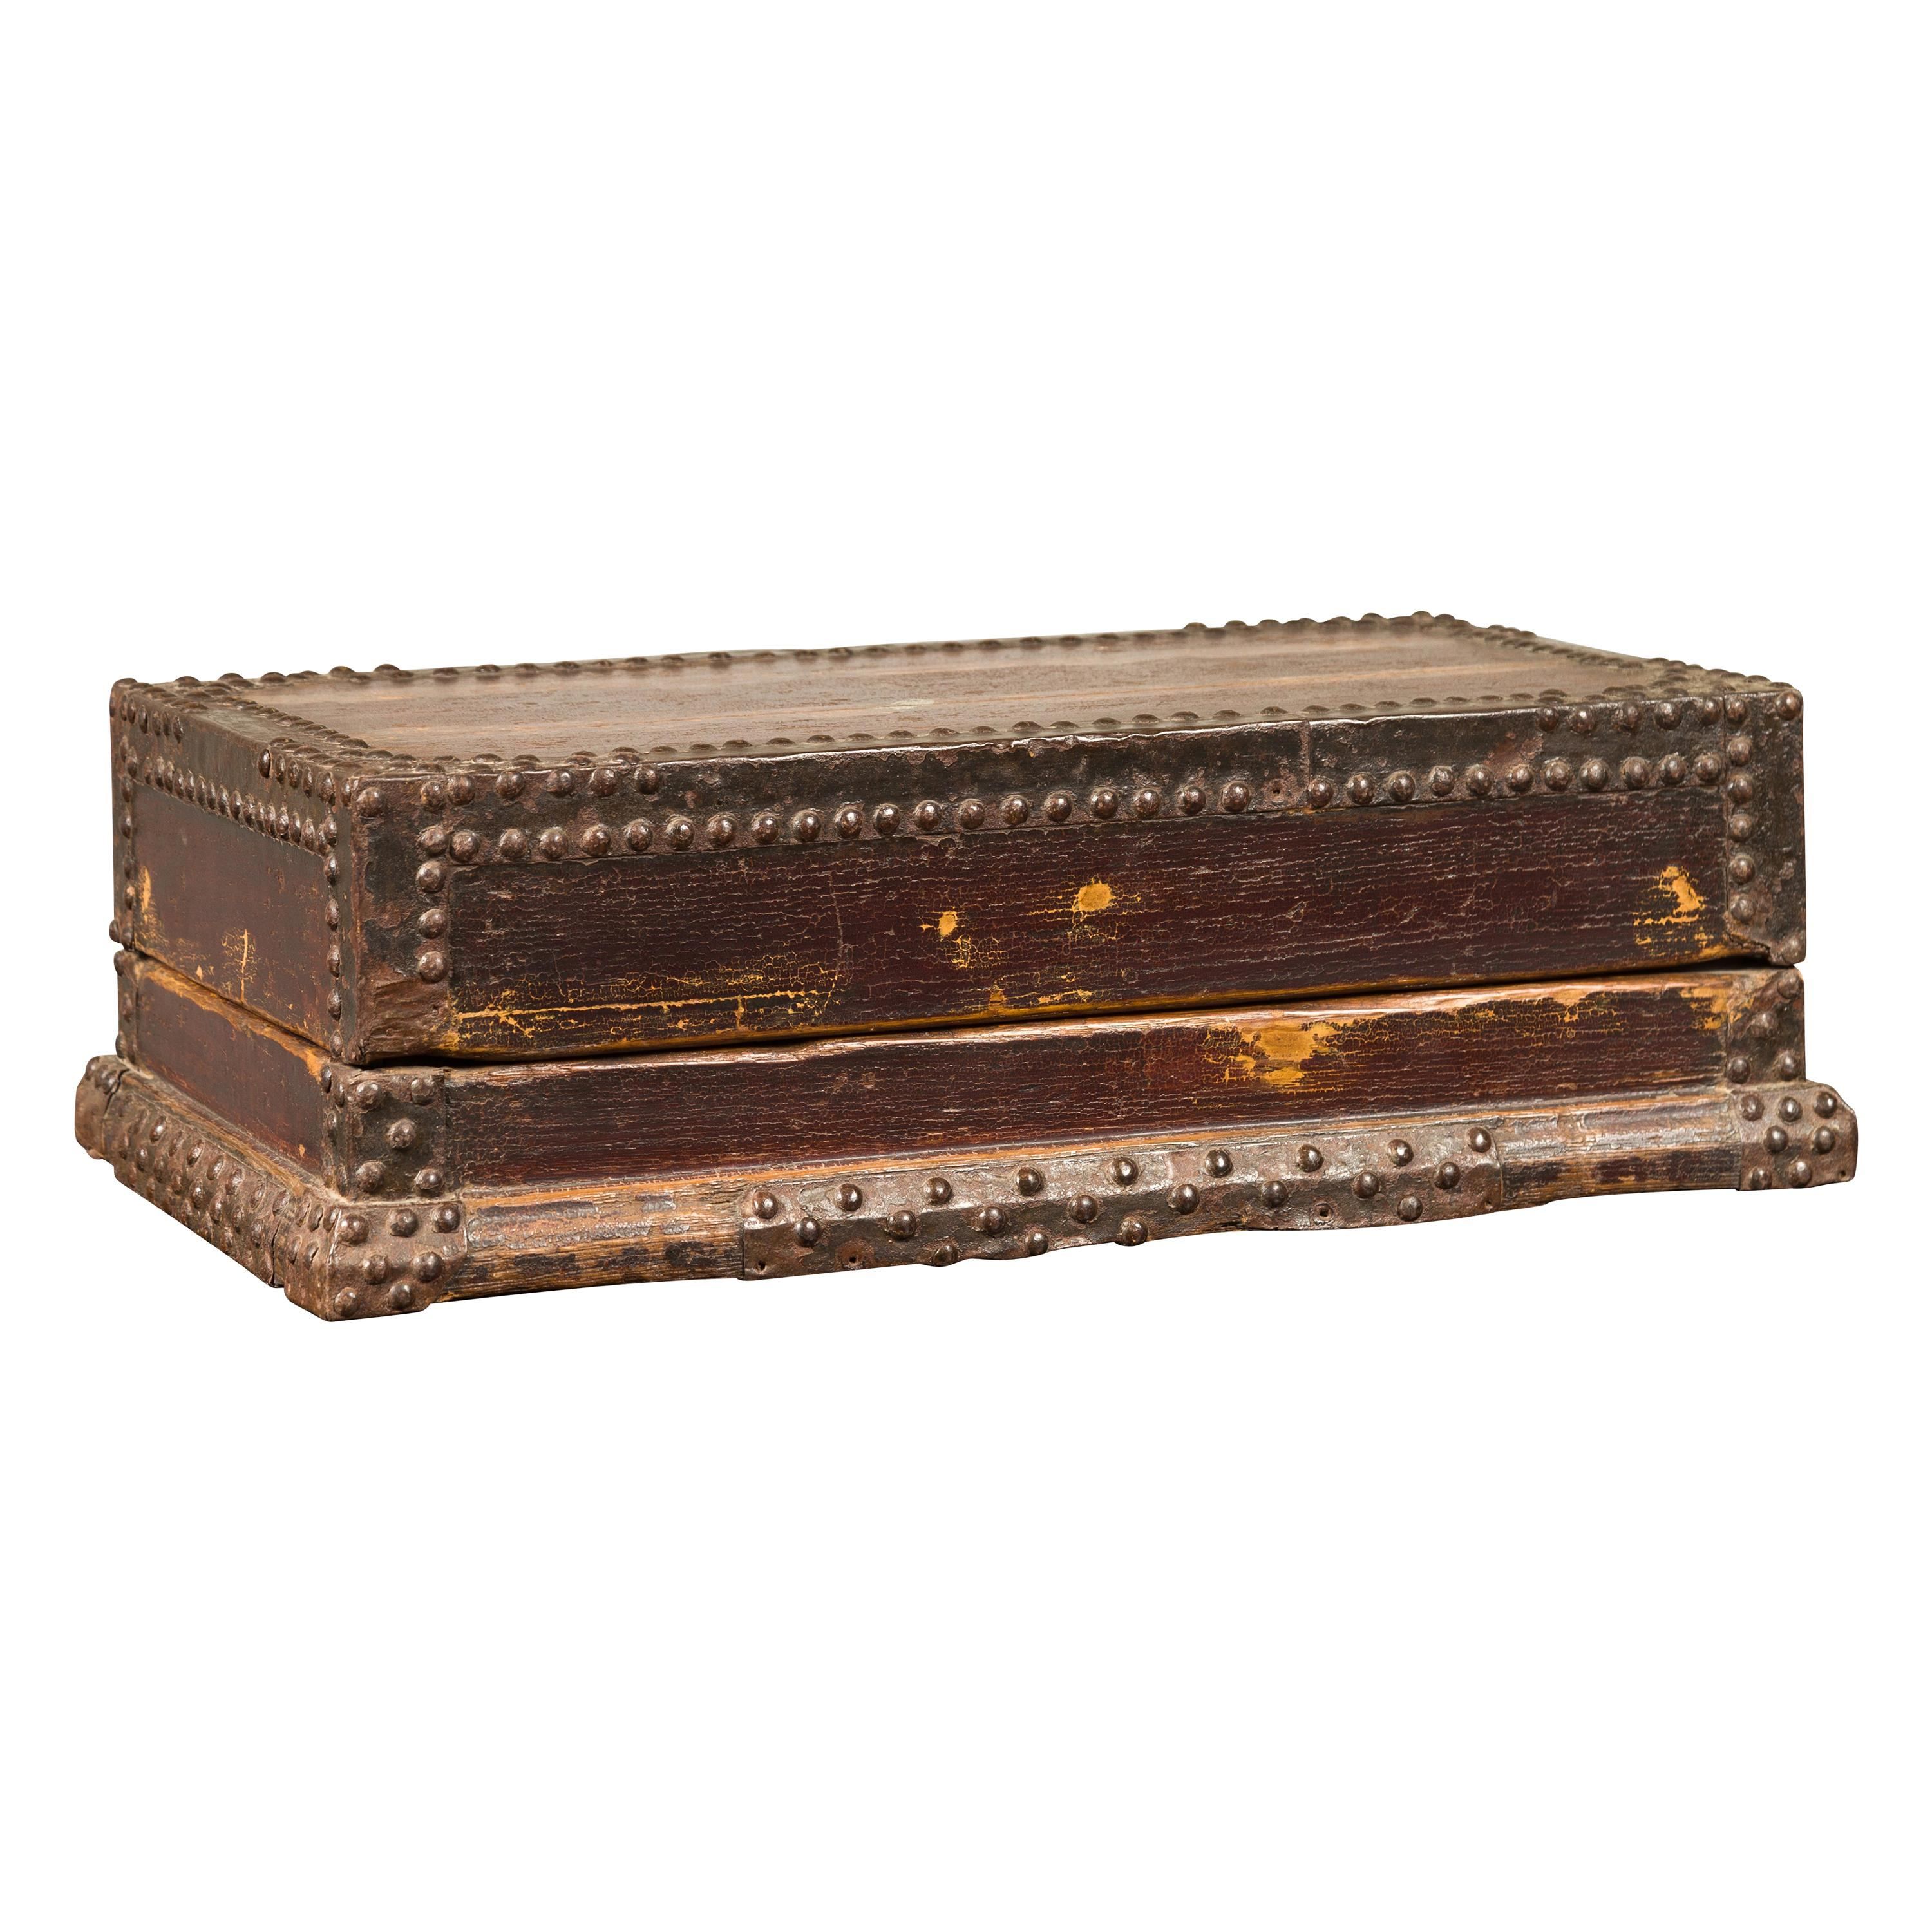 Antique Chinese Wooden Document Box with Distressed Patina and Brass Stud Design